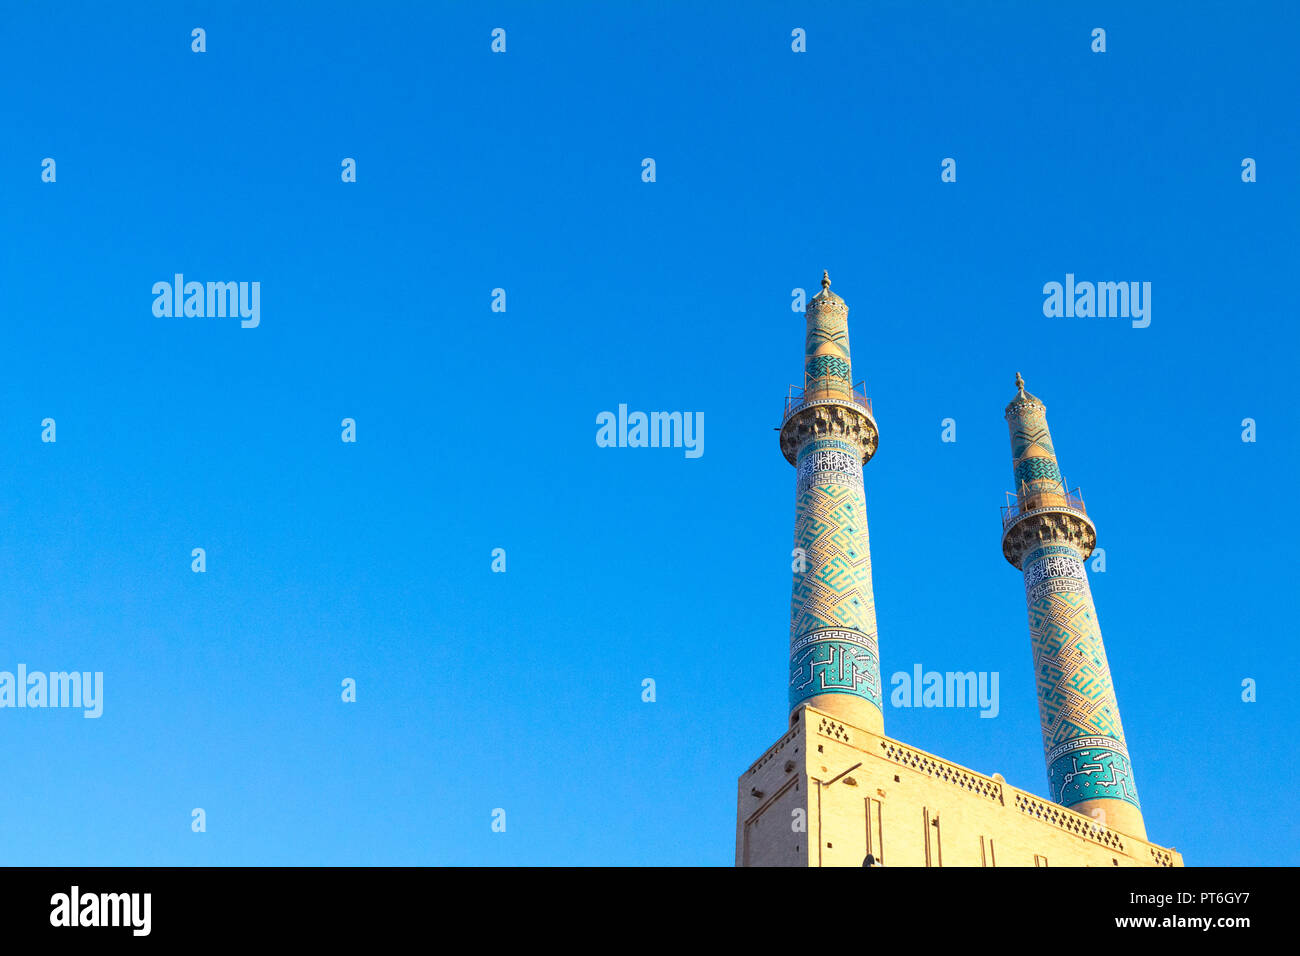 Jameh mosque, with its distinctive tiles minarets, seen in the afternoon. Jameh mosque is one of the symbols of the city of Yazd, in the middle of the Stock Photo